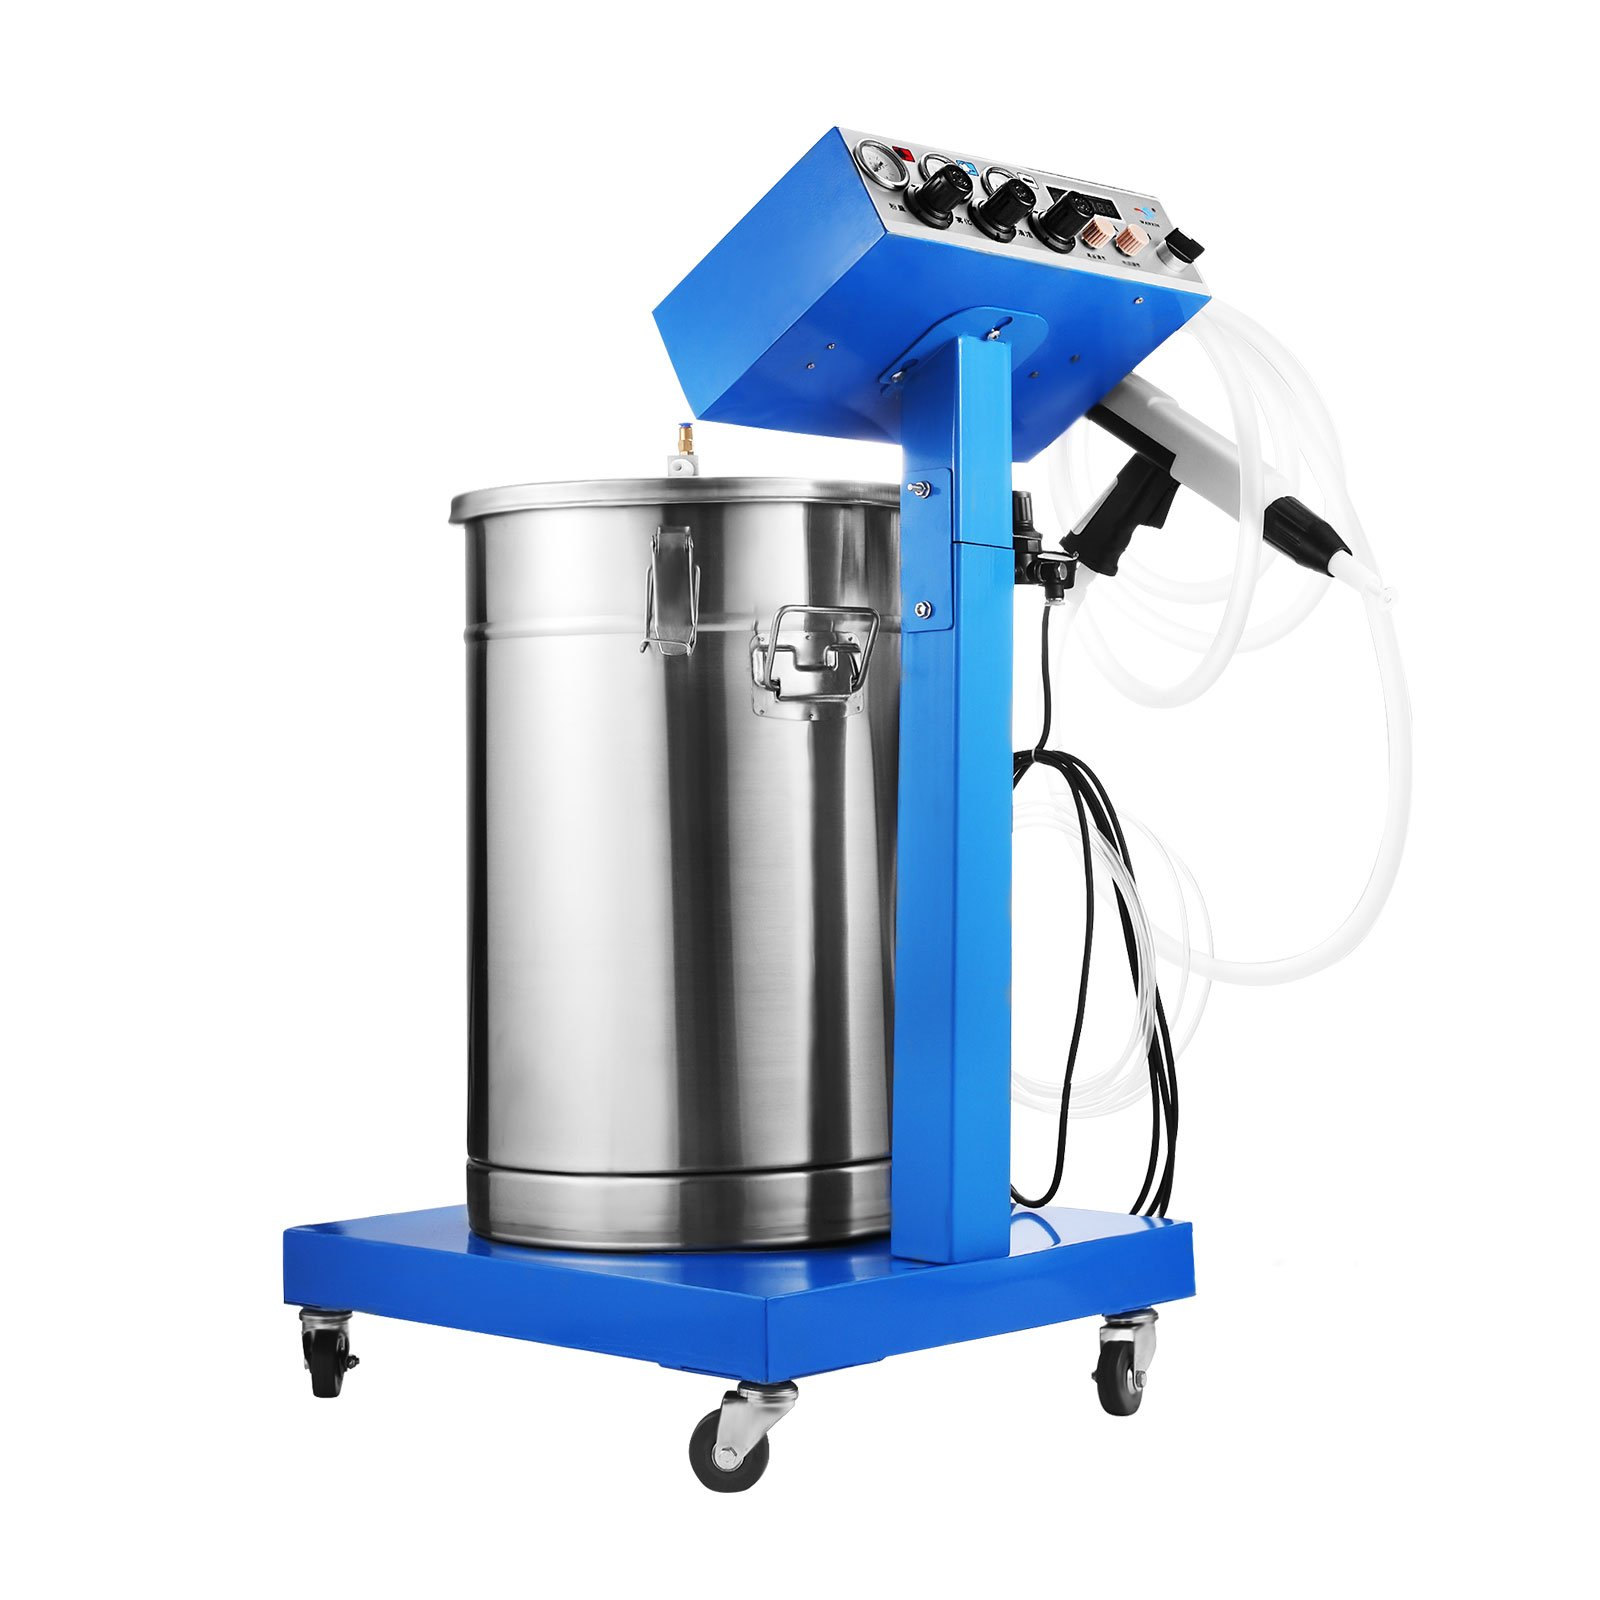 BestEquip Powder Coating Machine WX-958 50W 45L Capacity Electrostatic Powder Coating System with Spraying Gun 450g/min Electrostatic Machine